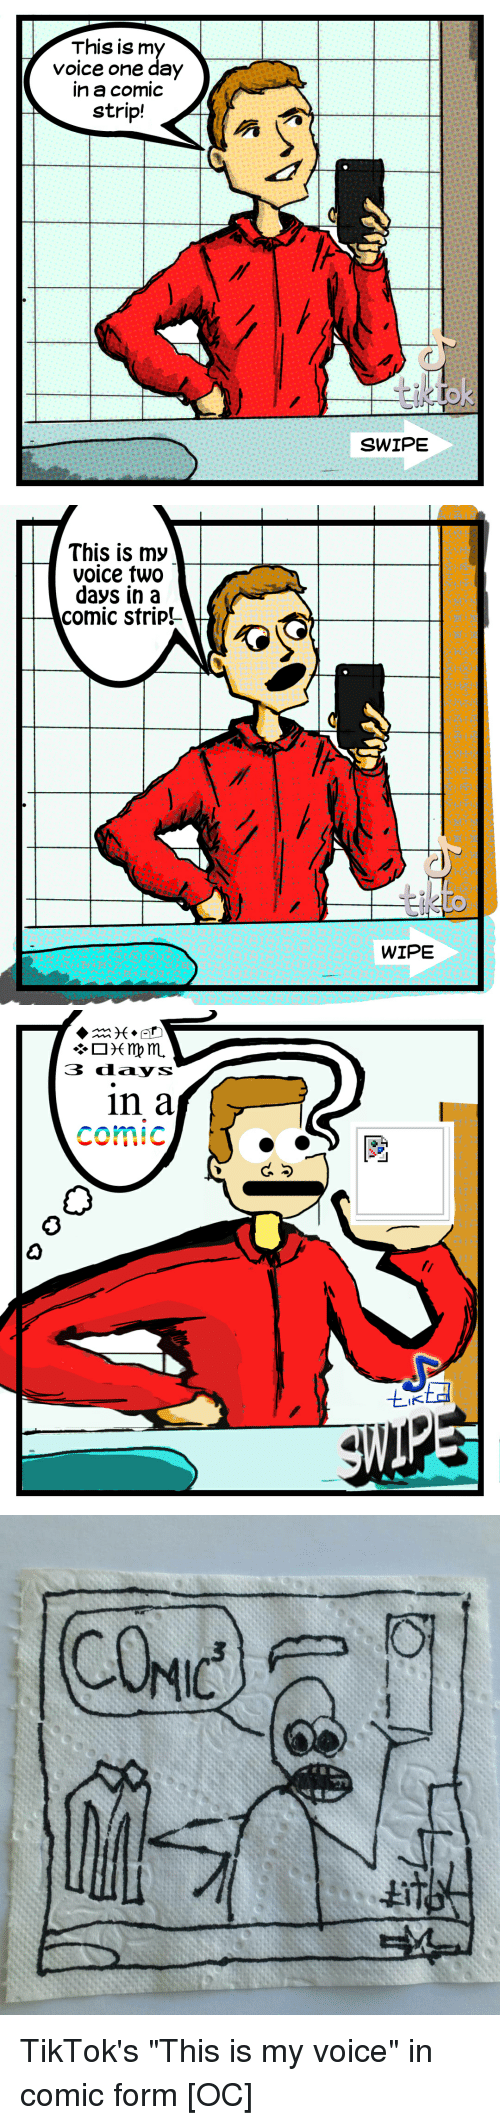 """Comic Strip: This is m  Voice one day  n a comic  strip!  SWIPE   This is my  voice two  days in a  comic strip!  WIPE   3 ddays  in a  comic  0  IK TikTok's """"This is my voice"""" in comic form [OC]"""